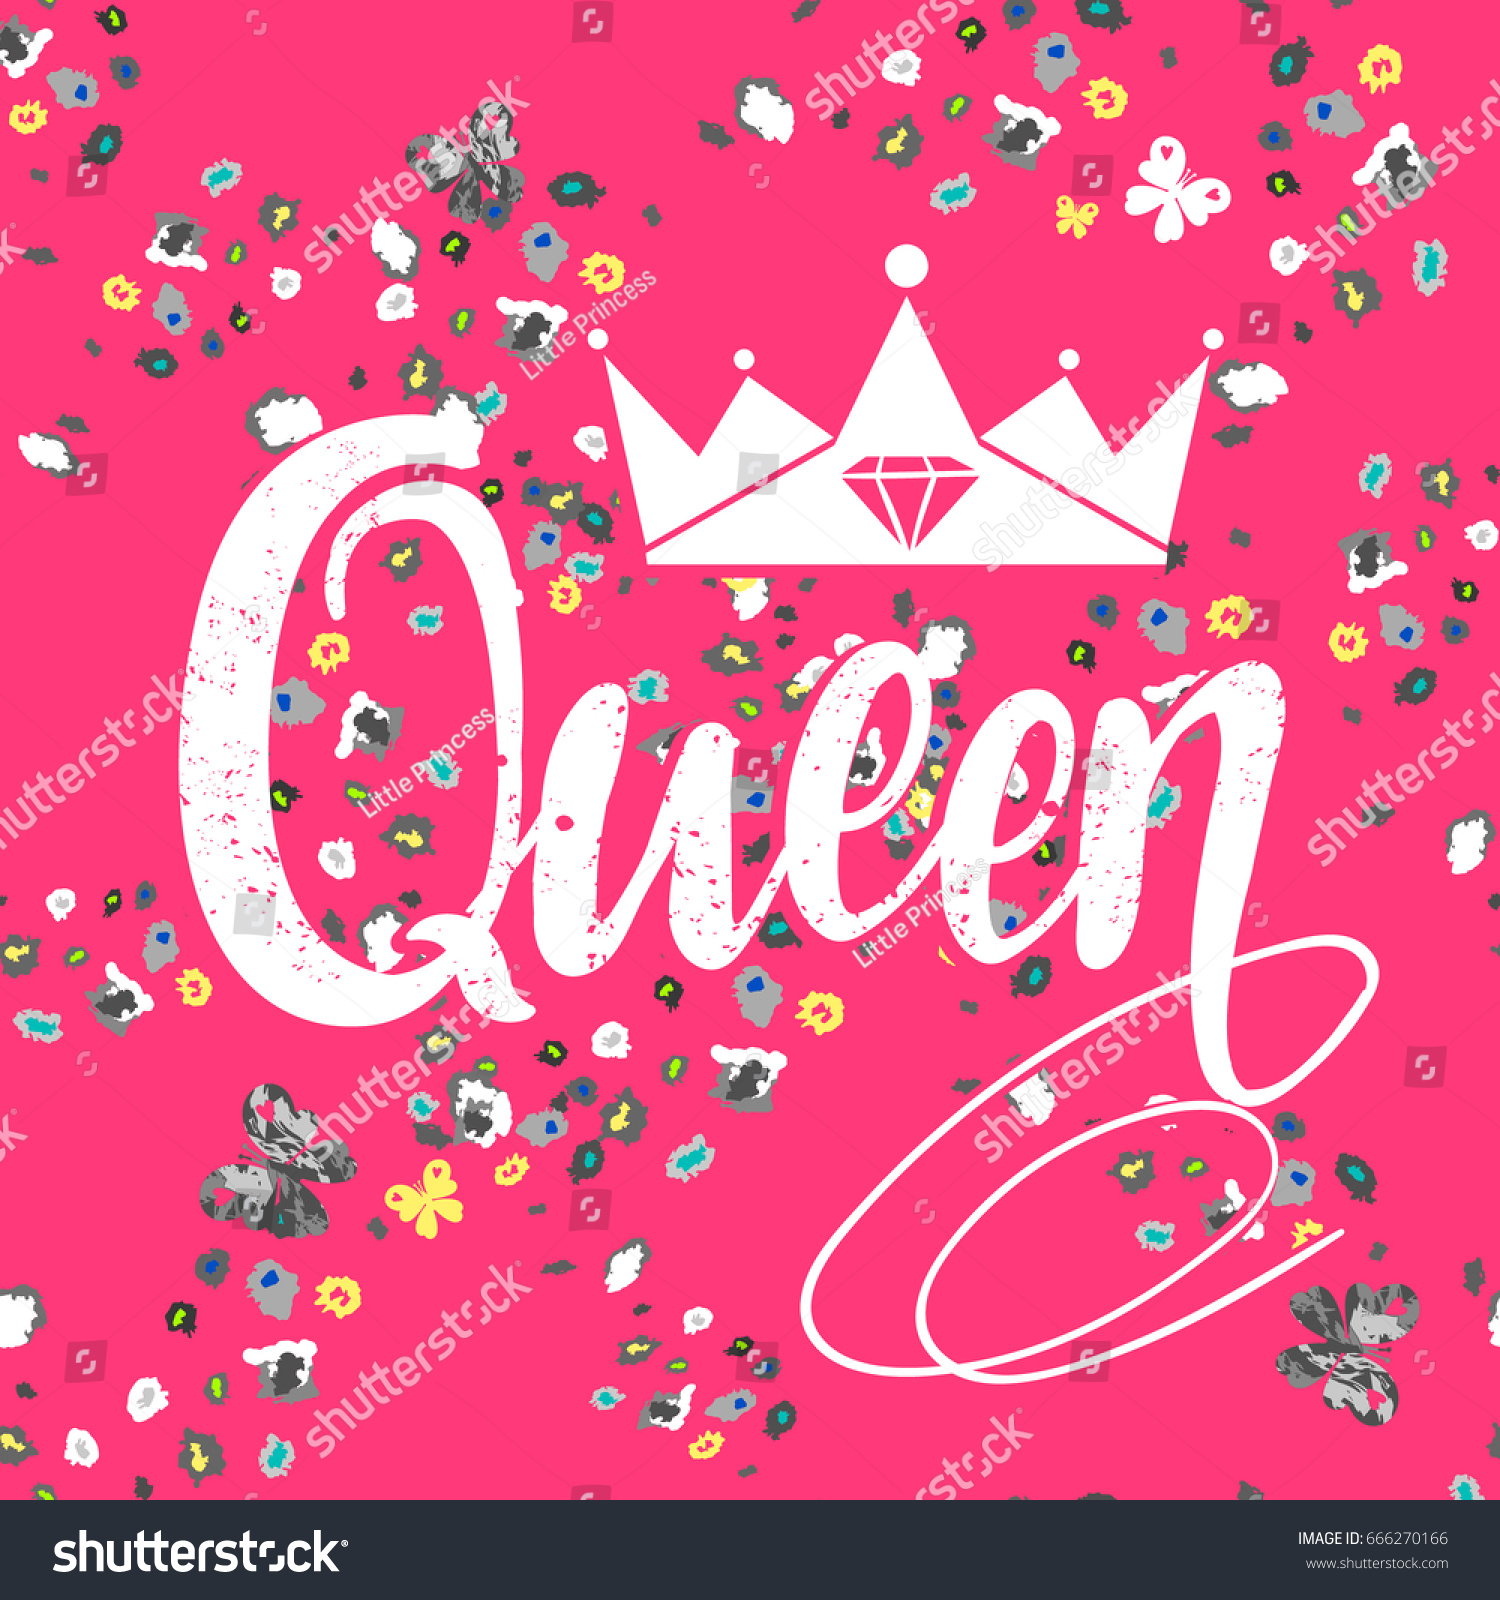 t shirt design on pink background with floral motives pattern and word queen crown